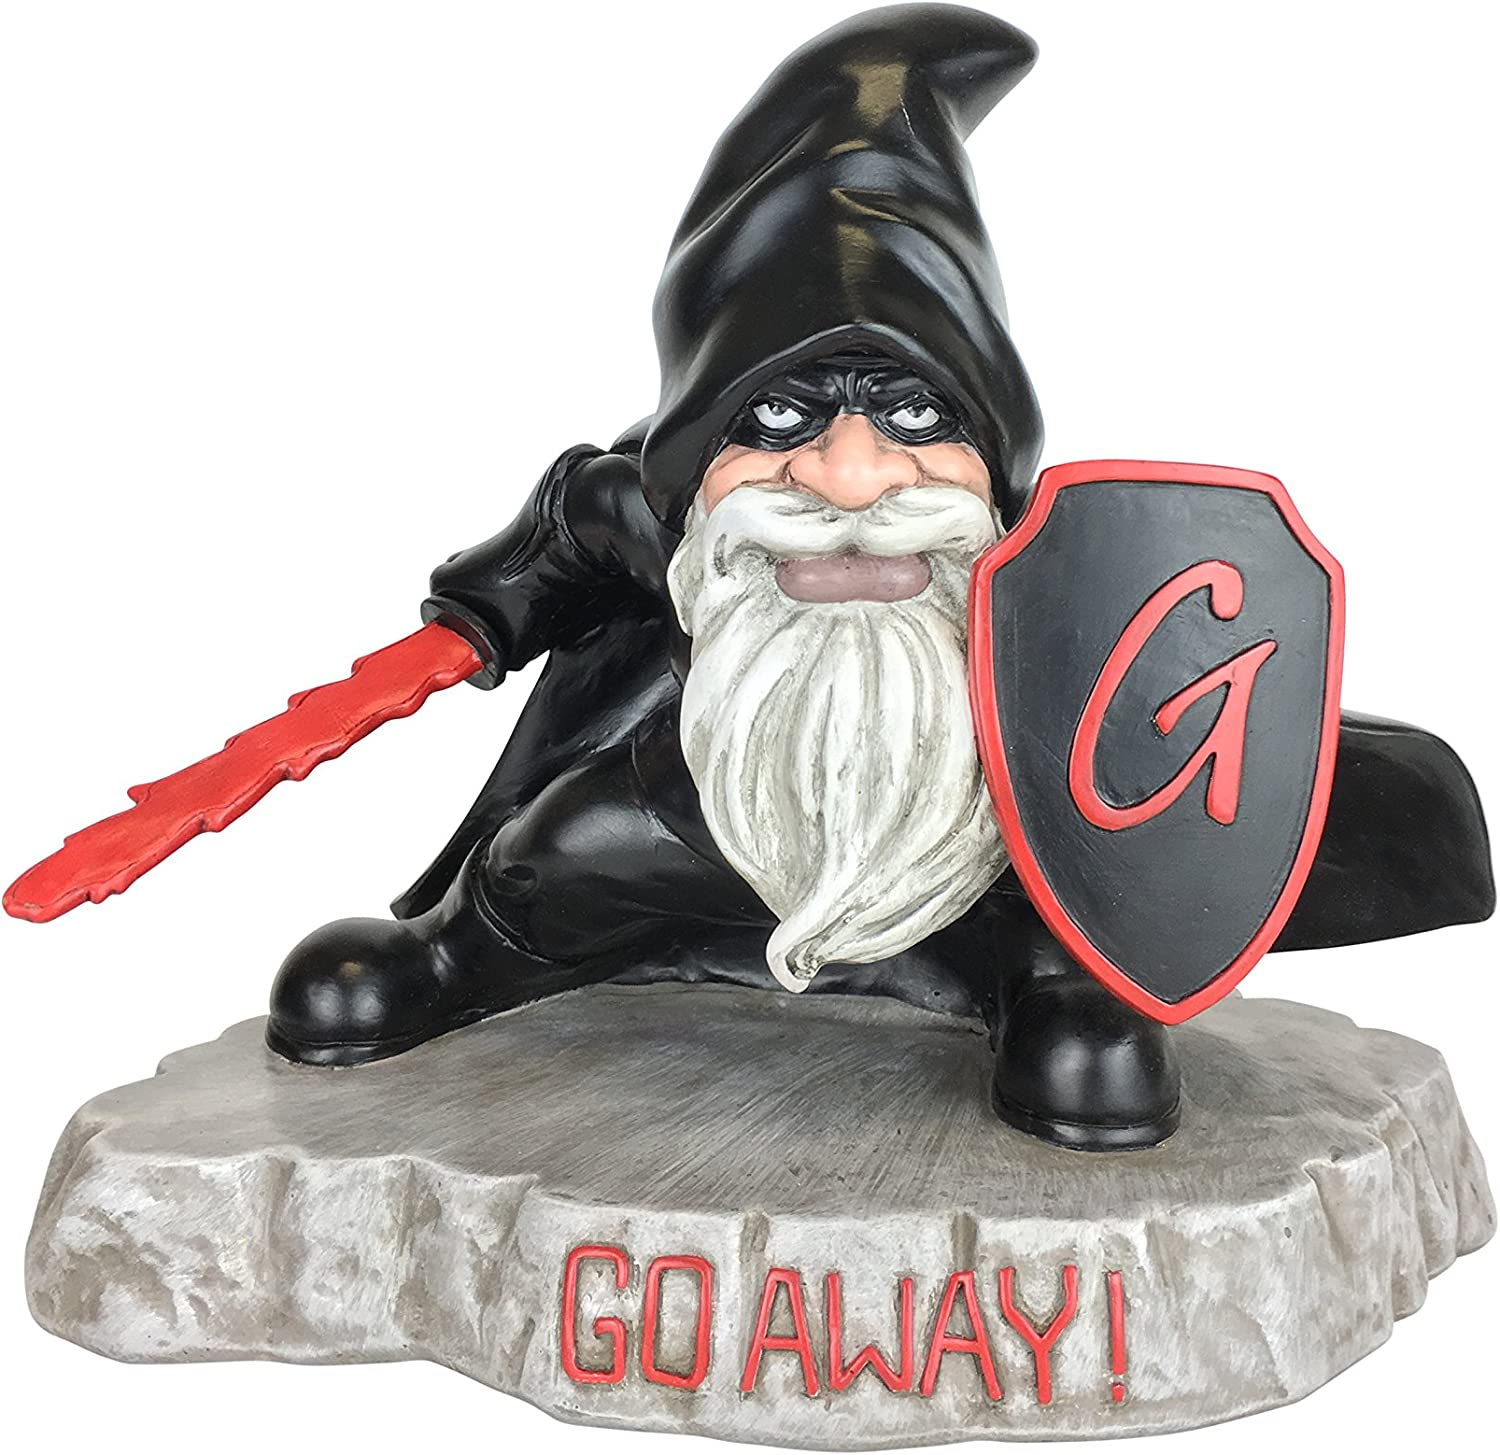 GlitZGlam Warrior Gnome with Shield - Protector of The Garden Gnomes and Guardian of The Enchanted Miniature Fairies in Lawn Gnome Land